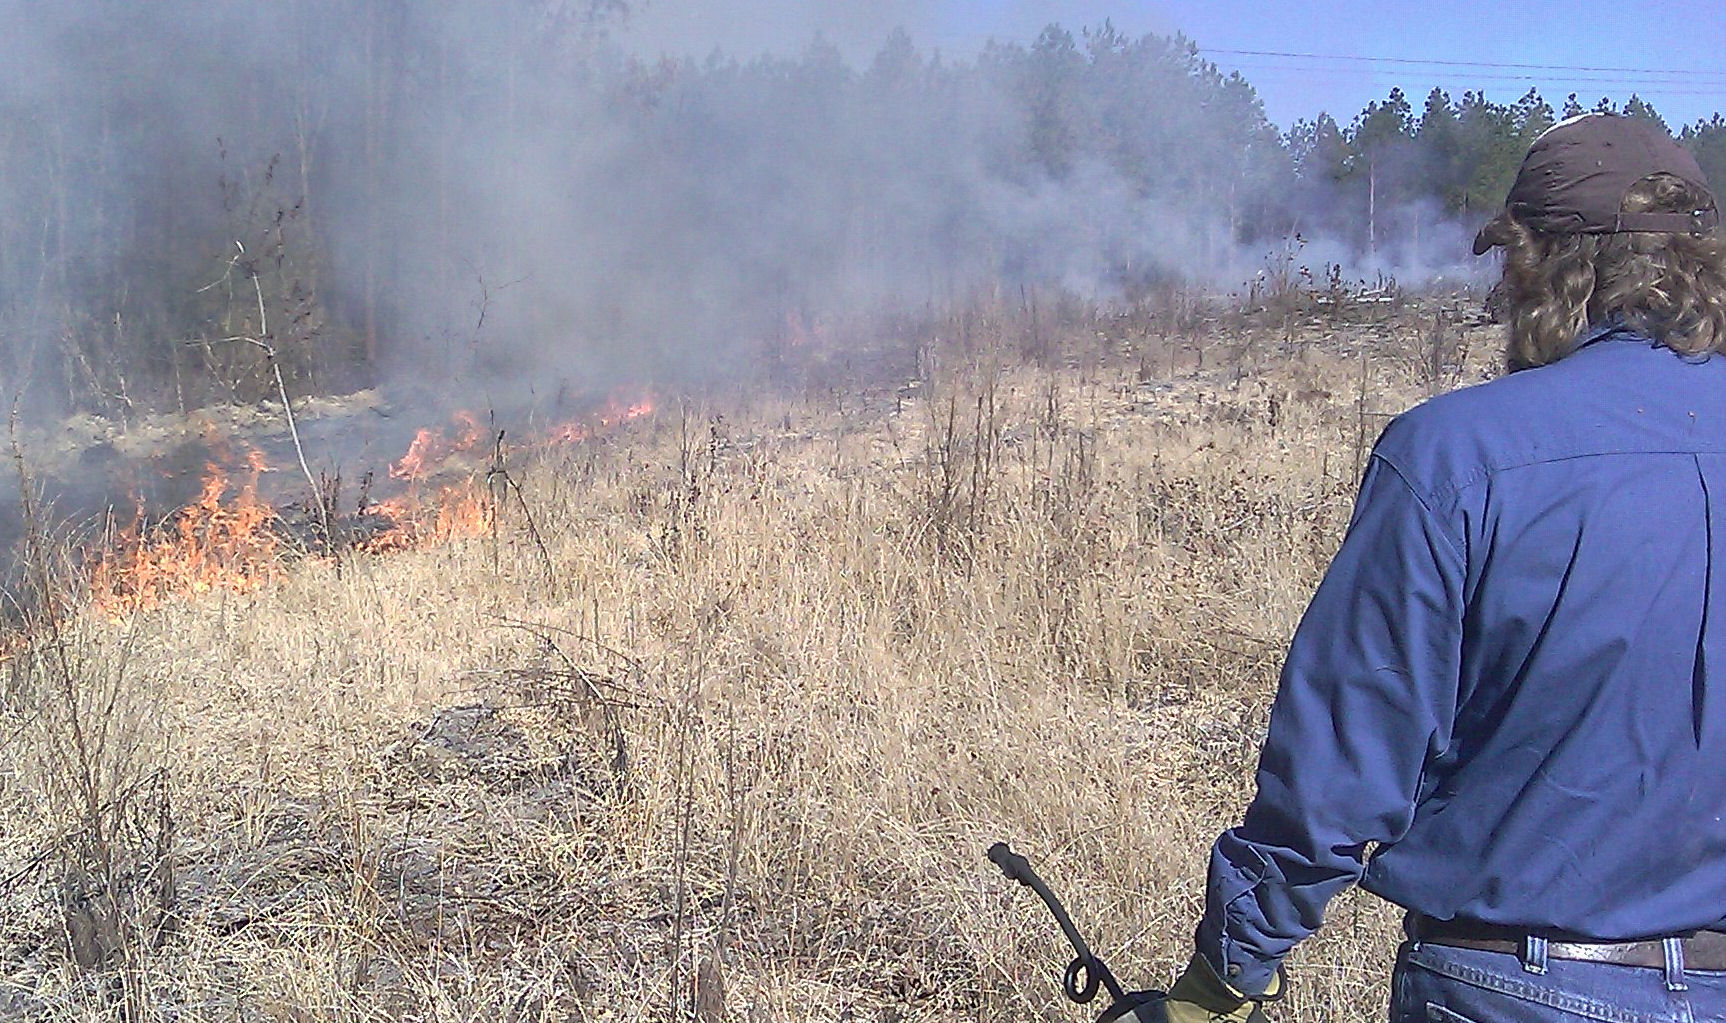 Setting forestry fires